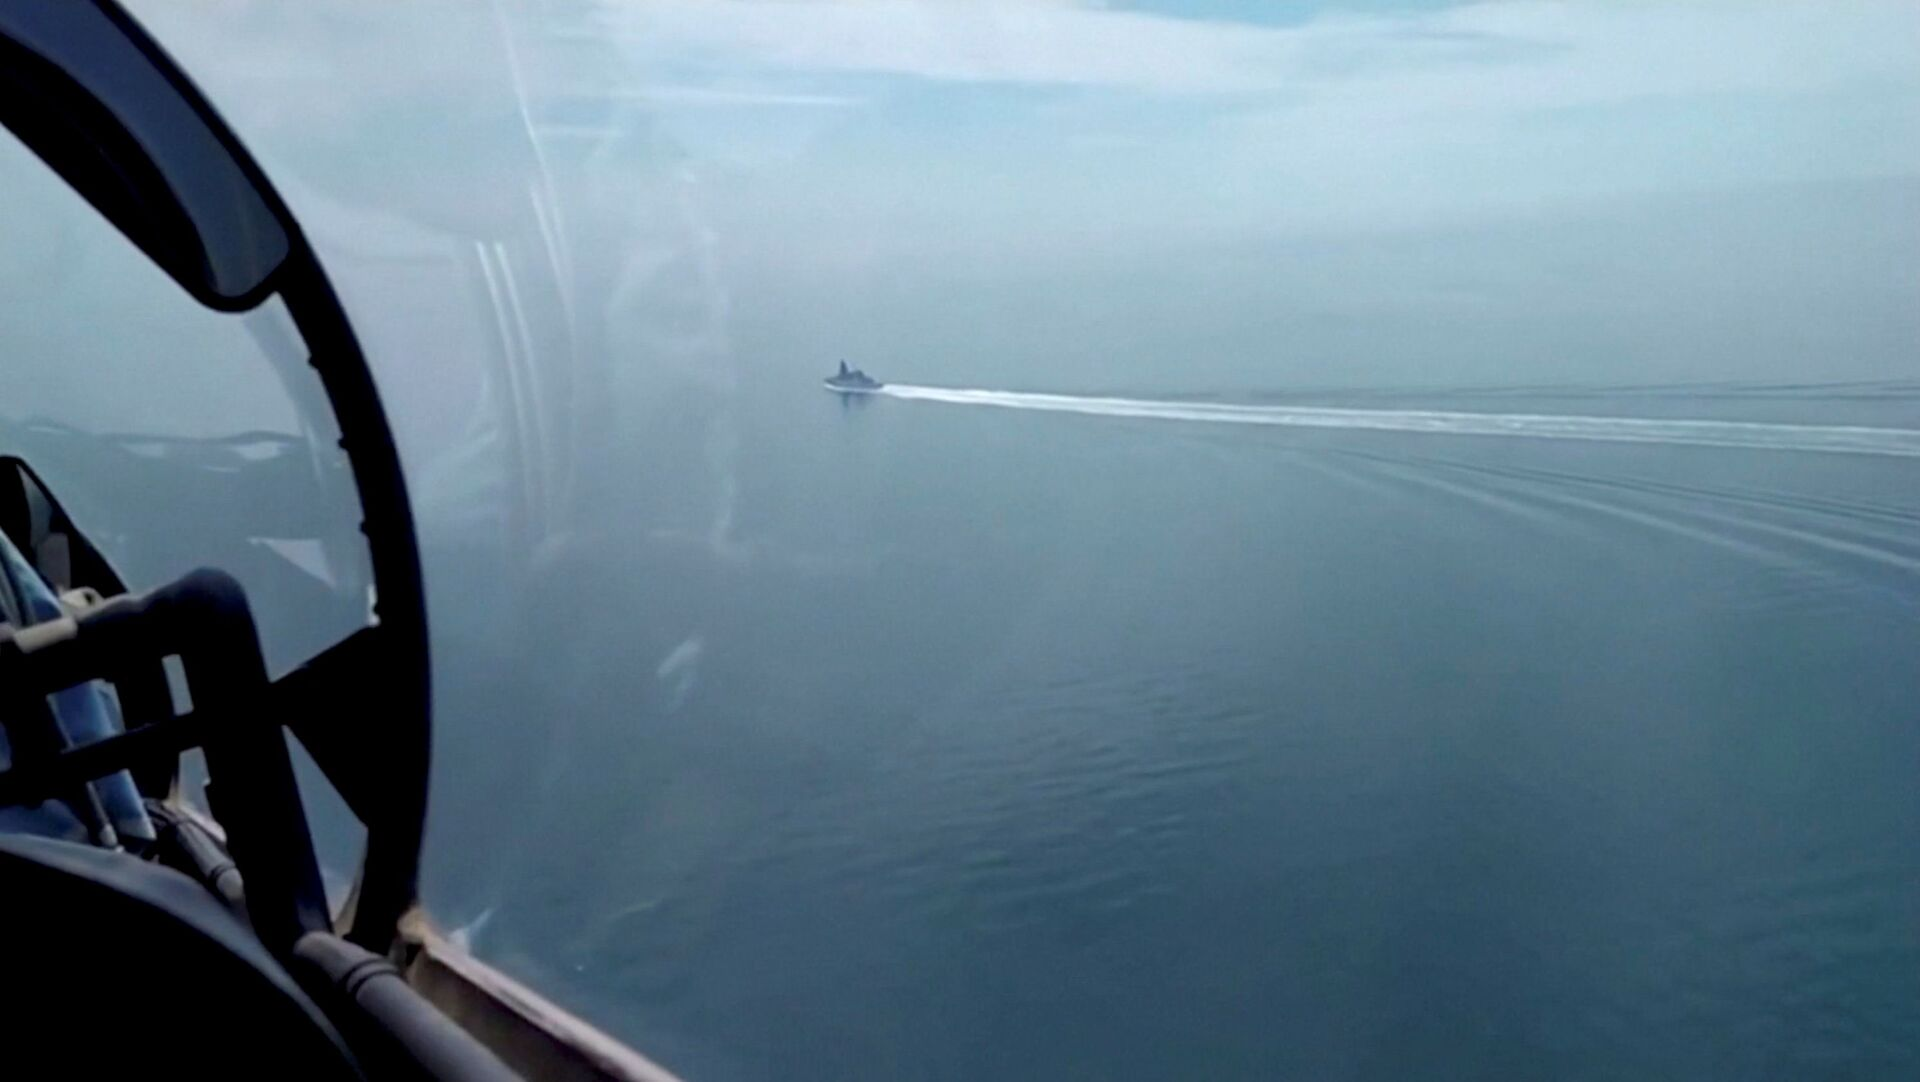 A still image taken from a video released by Russia's Defence Ministry allegedly shows British Royal Navy's Type 45 destroyer HMS Defender filmed from a Russian military aircraft in the Black Sea, June 23, 2021. - Sputnik International, 1920, 07.09.2021